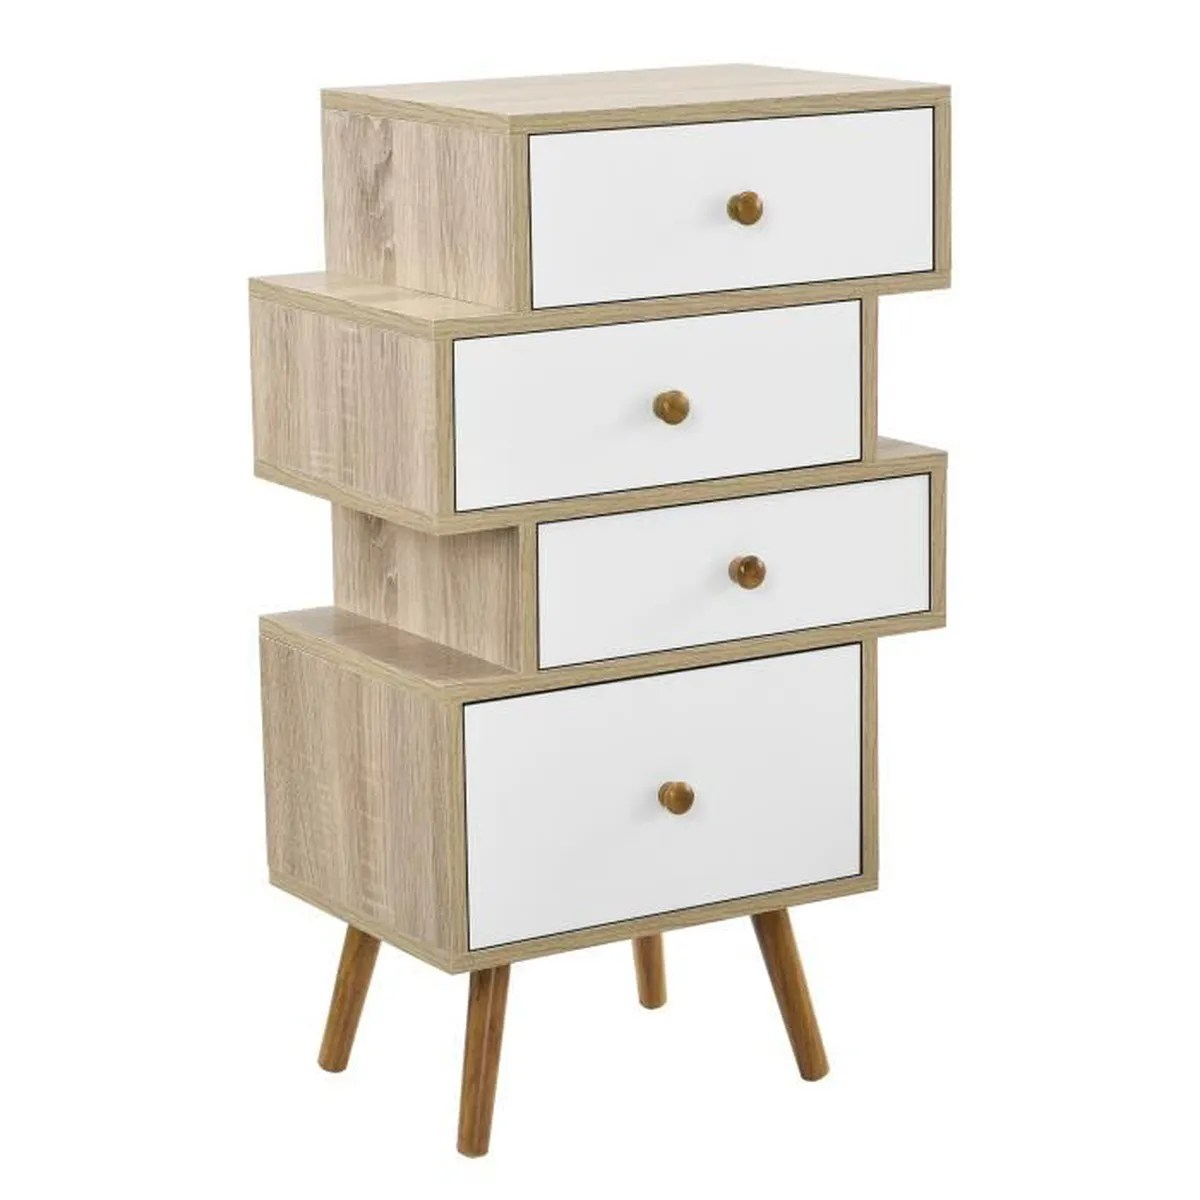 Commode Chambre Design Design Highboard Commode Buffet Armoire Blanc Chêne Table D Appoint